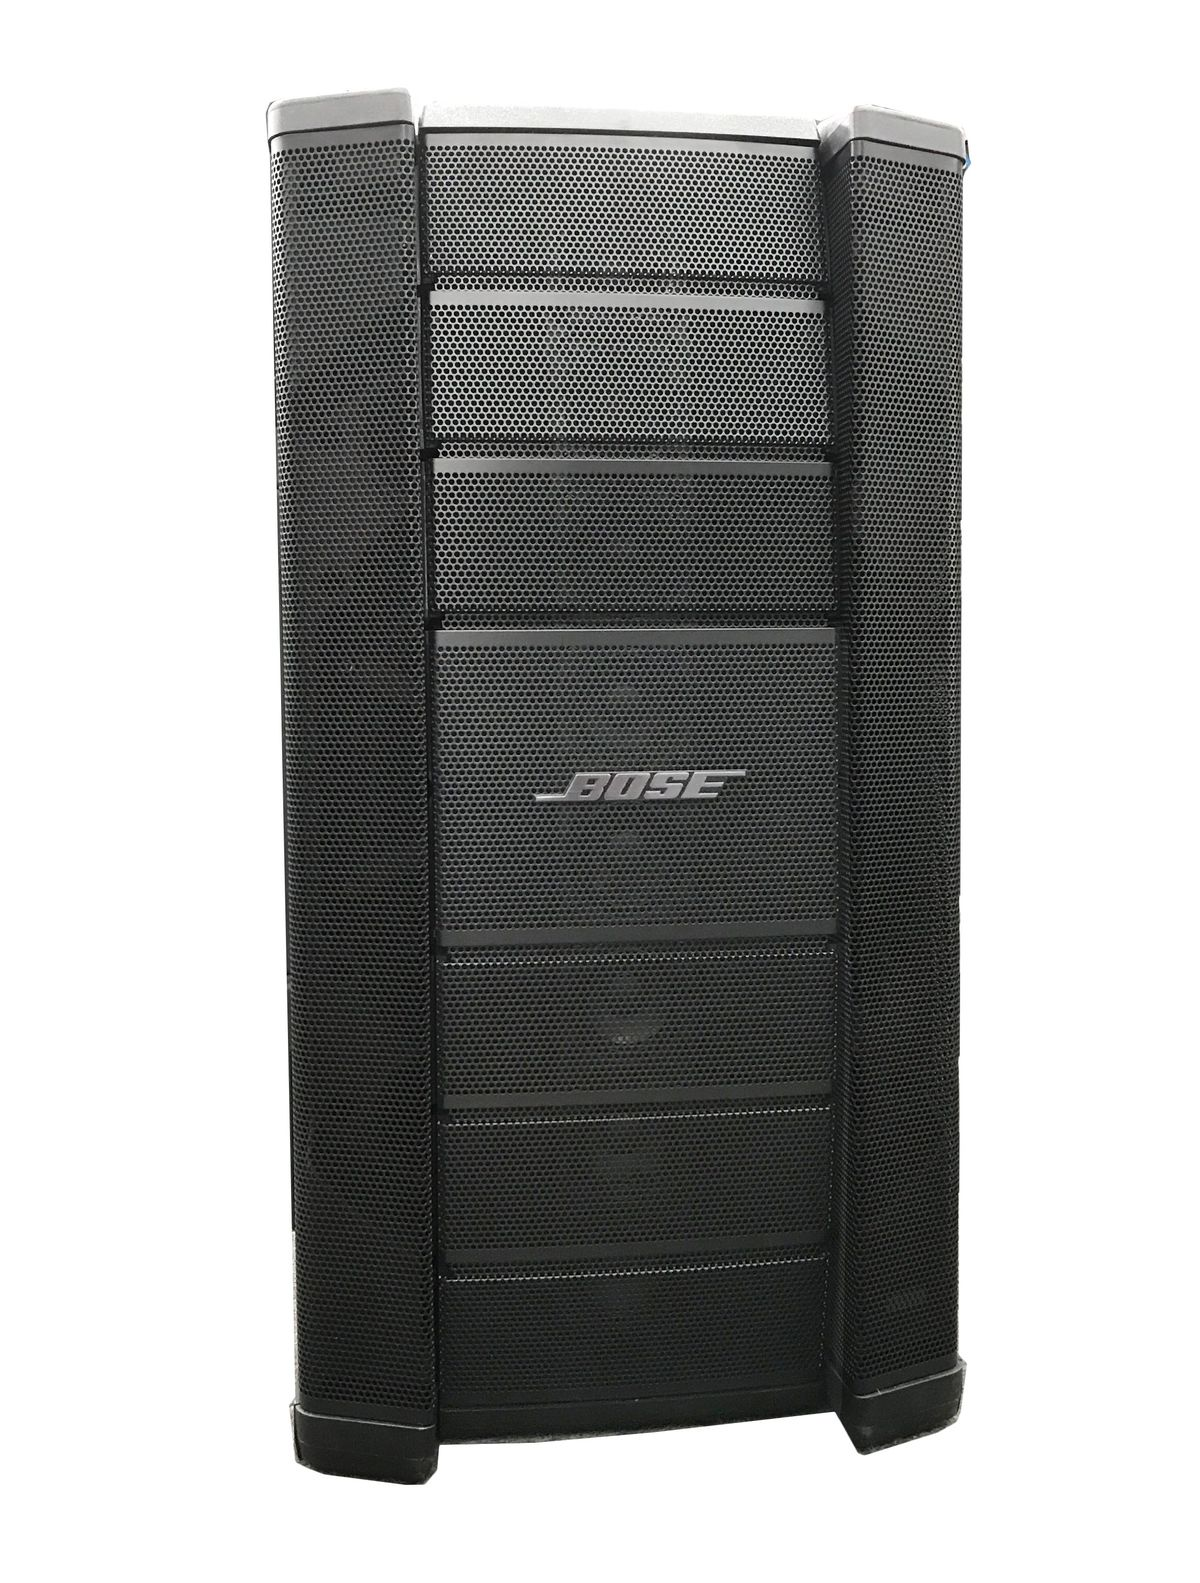 The Bose F1 Model 812 Loudspeaker is at Hollywood Sound Systems.